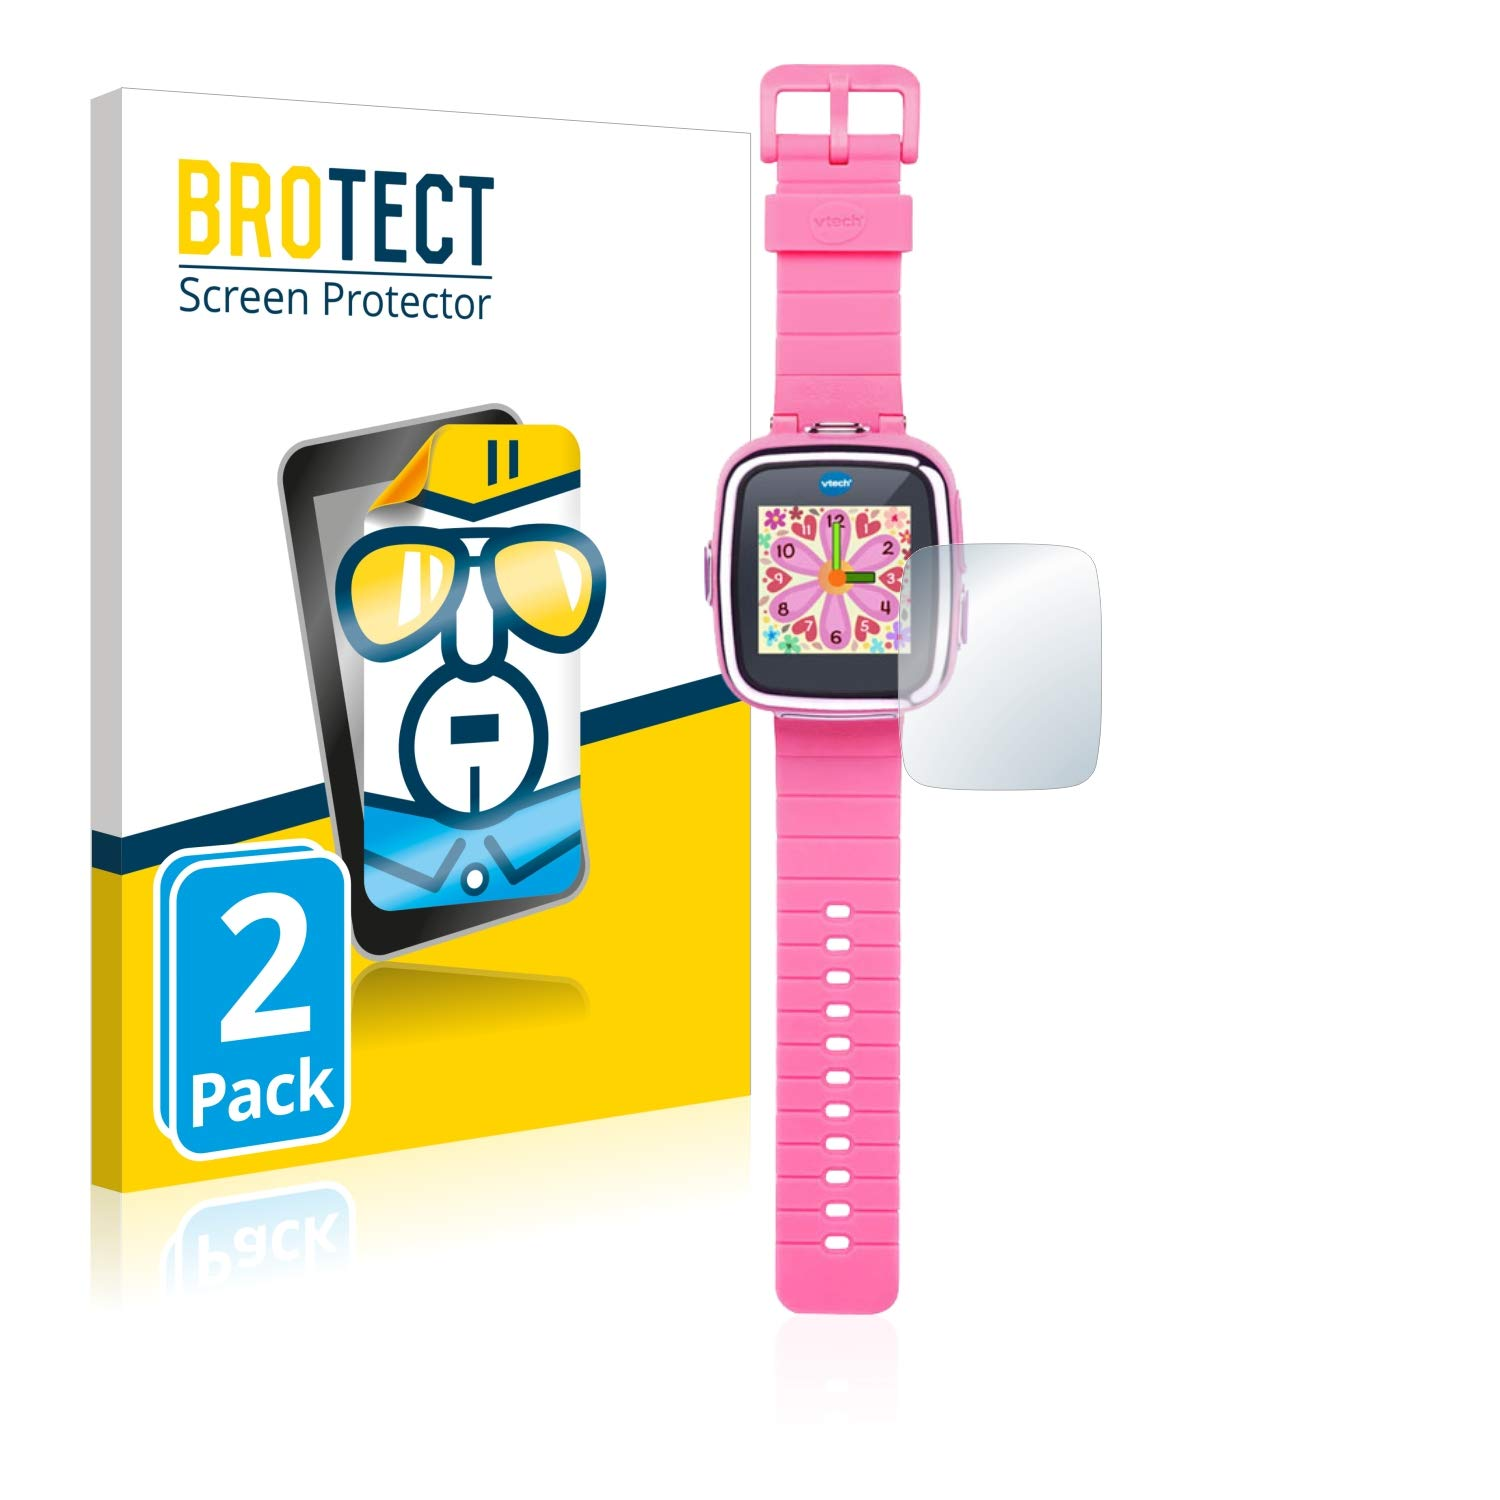 brotect Protector Pantalla Compatible con Vtech Kidizoom Smart Watch DX Protector Transparente (2 Unidades) Anti-Huellas